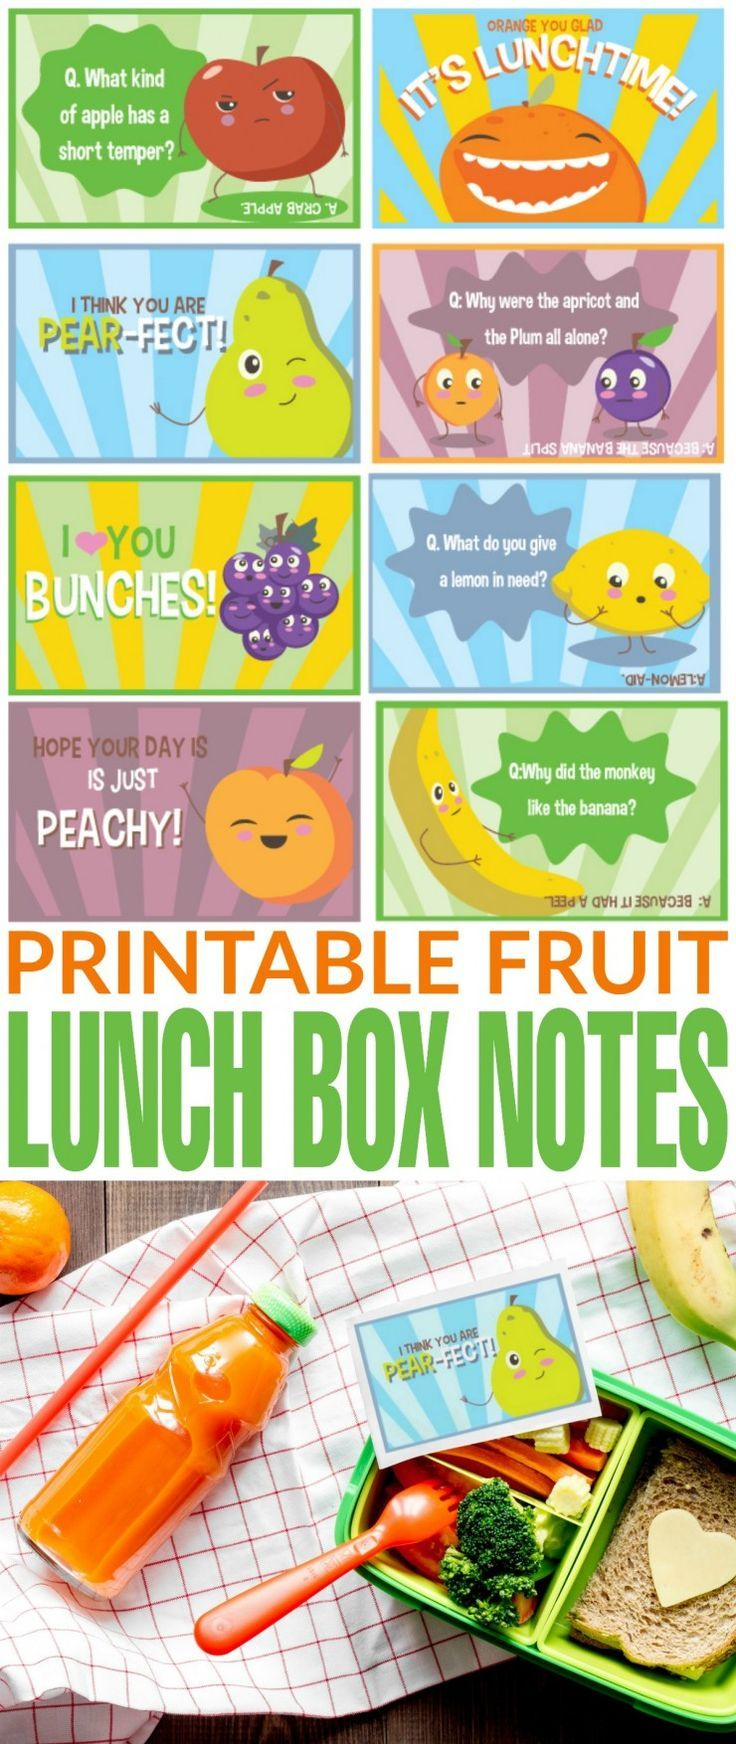 These Free Printable Fruit Lunch Box Notes are super fun and cute don't you think? They bring me back to my childhood and the lunch notes my dad used to leave in my lunch from time to time.